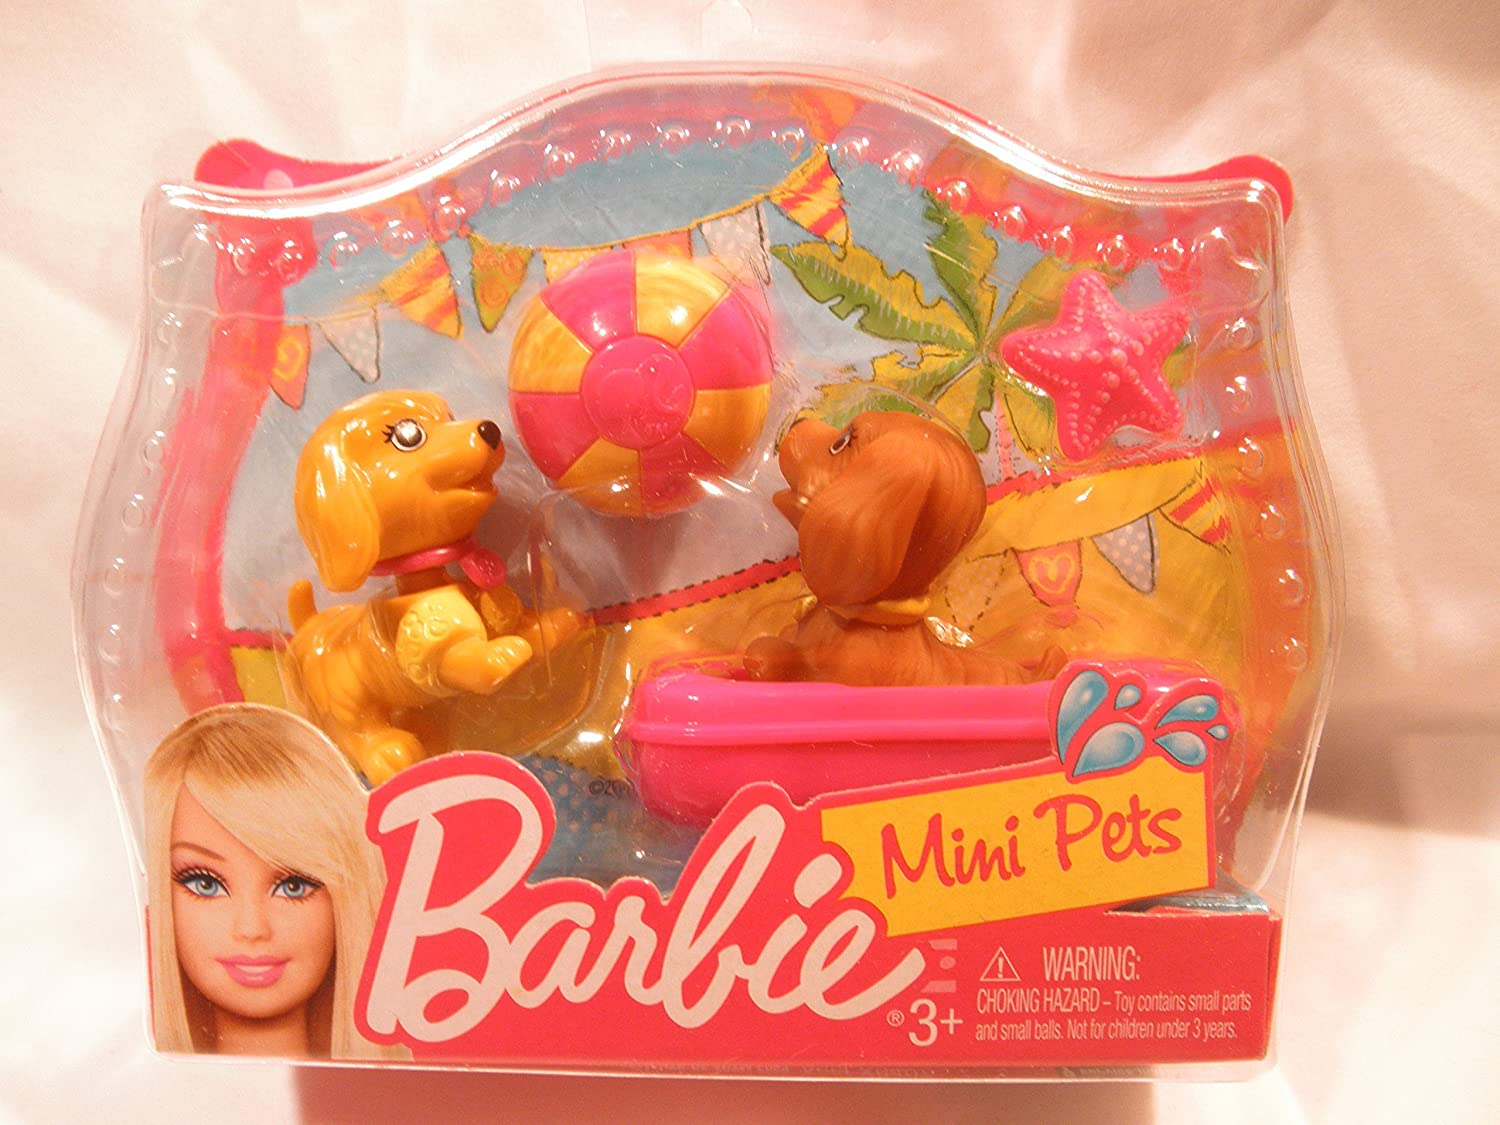 Barbie Mini Pets Beach Ball Fun Puppies barbie сказочная балерина barbie